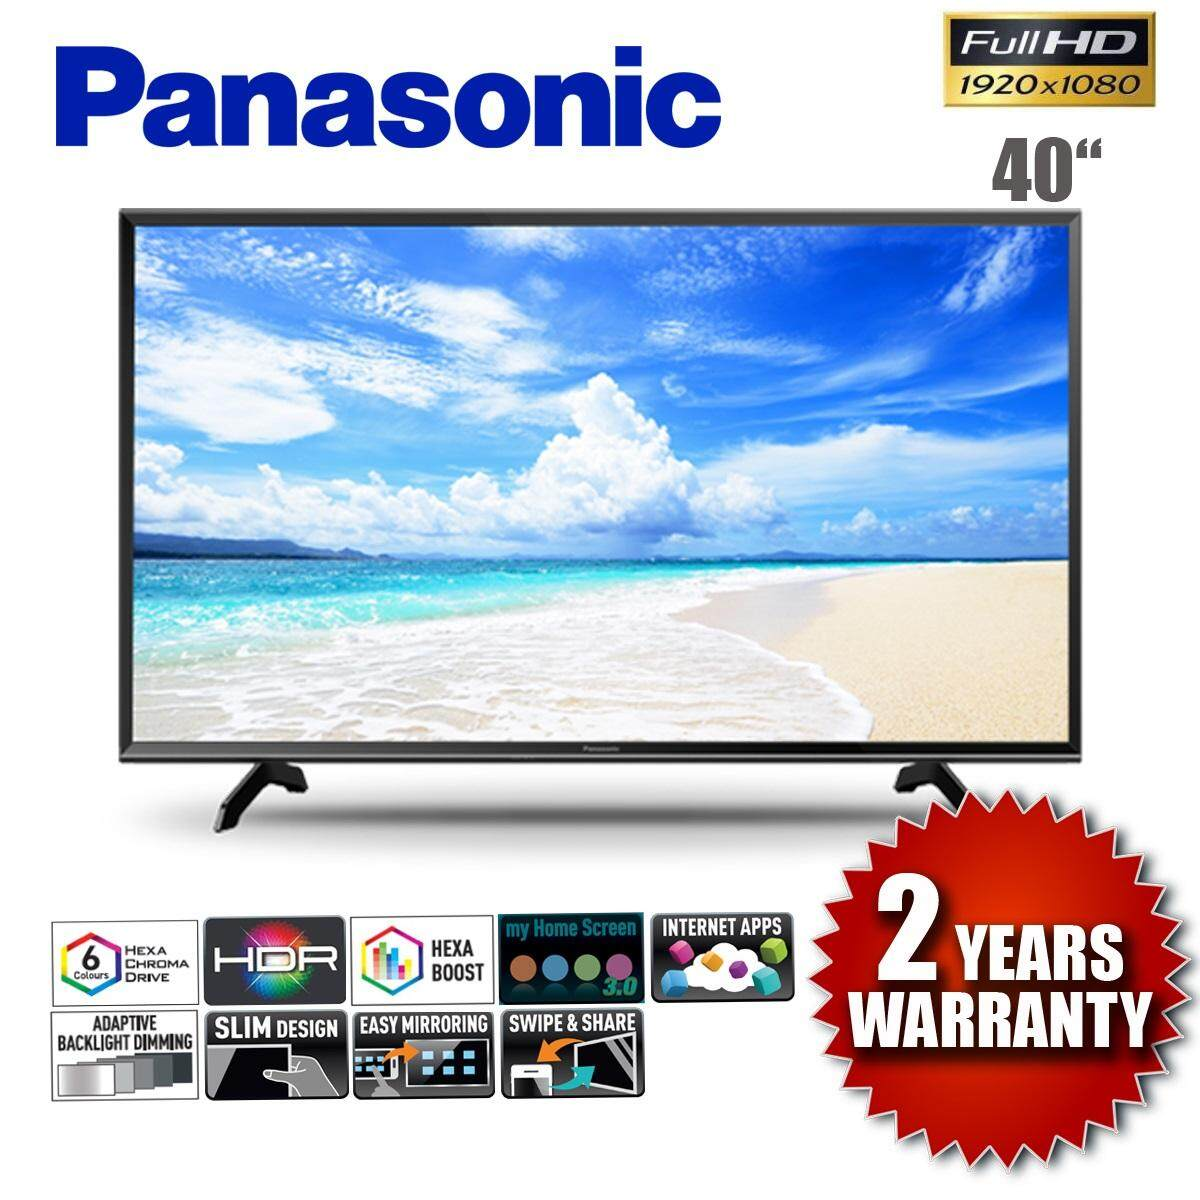 PANASONIC TH-40FS500K FULL HD LED SMART TV 2018 MODEL